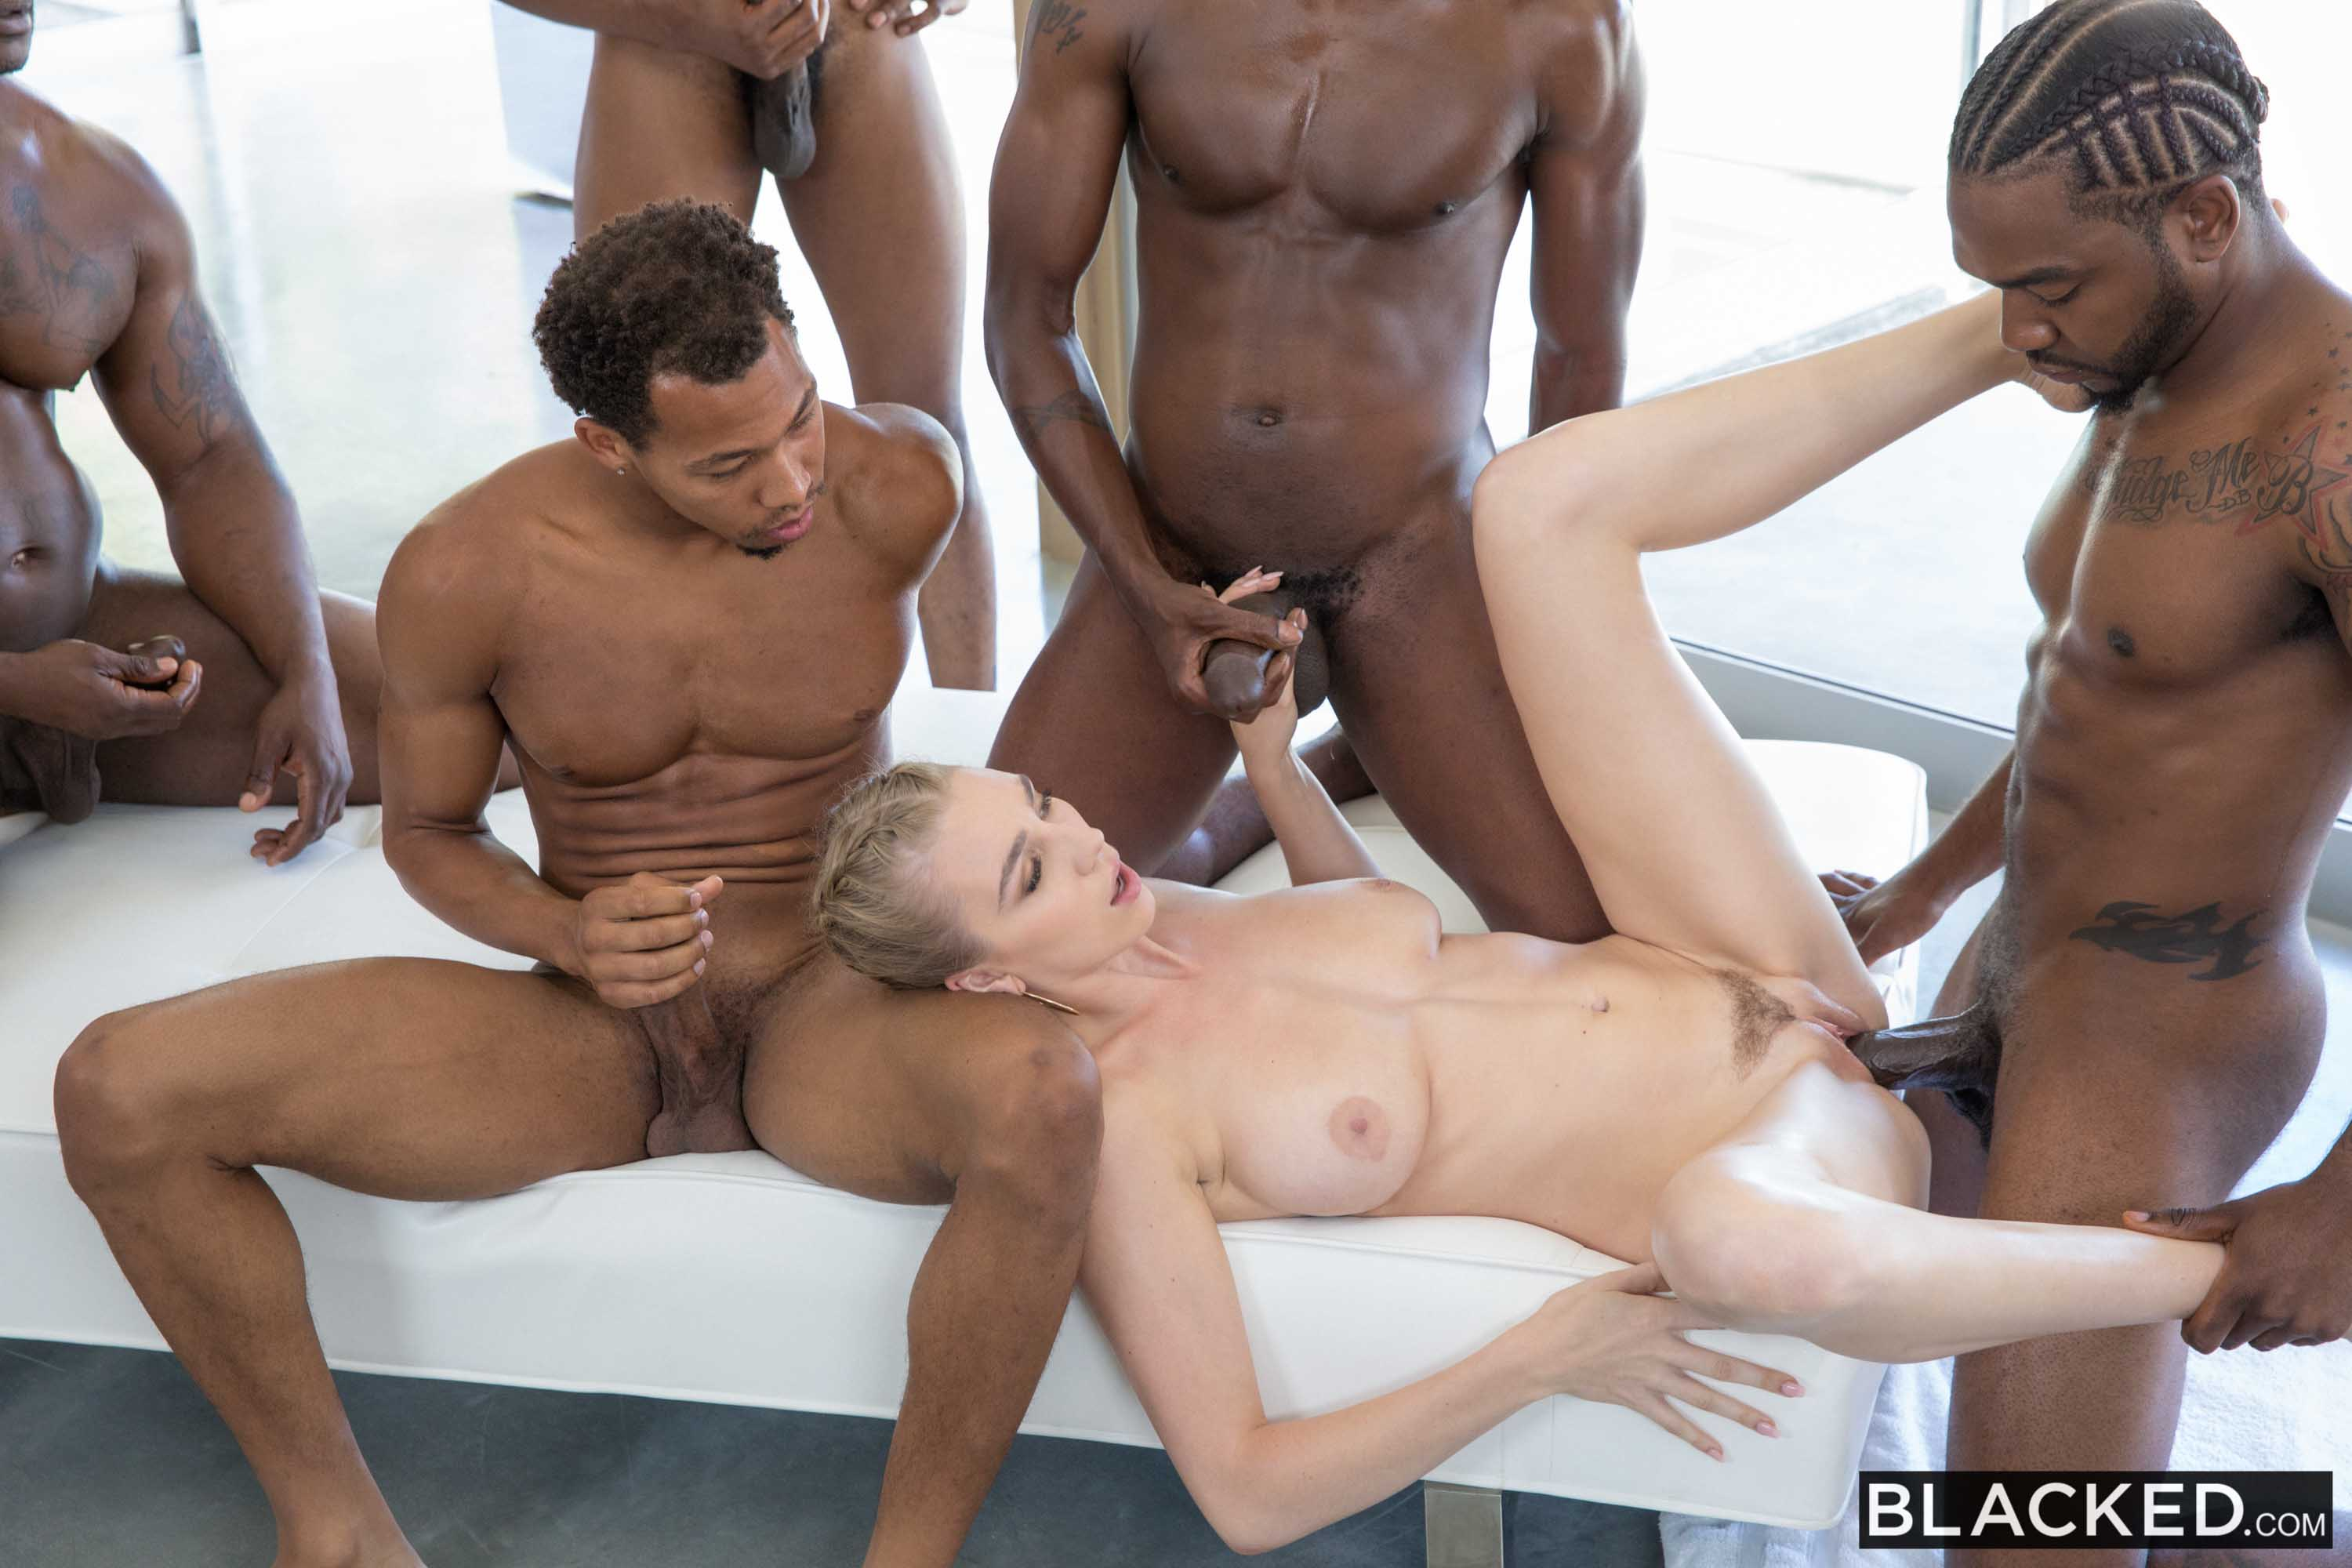 Blacked kendra sunderland meets mandingo - 1 part 3